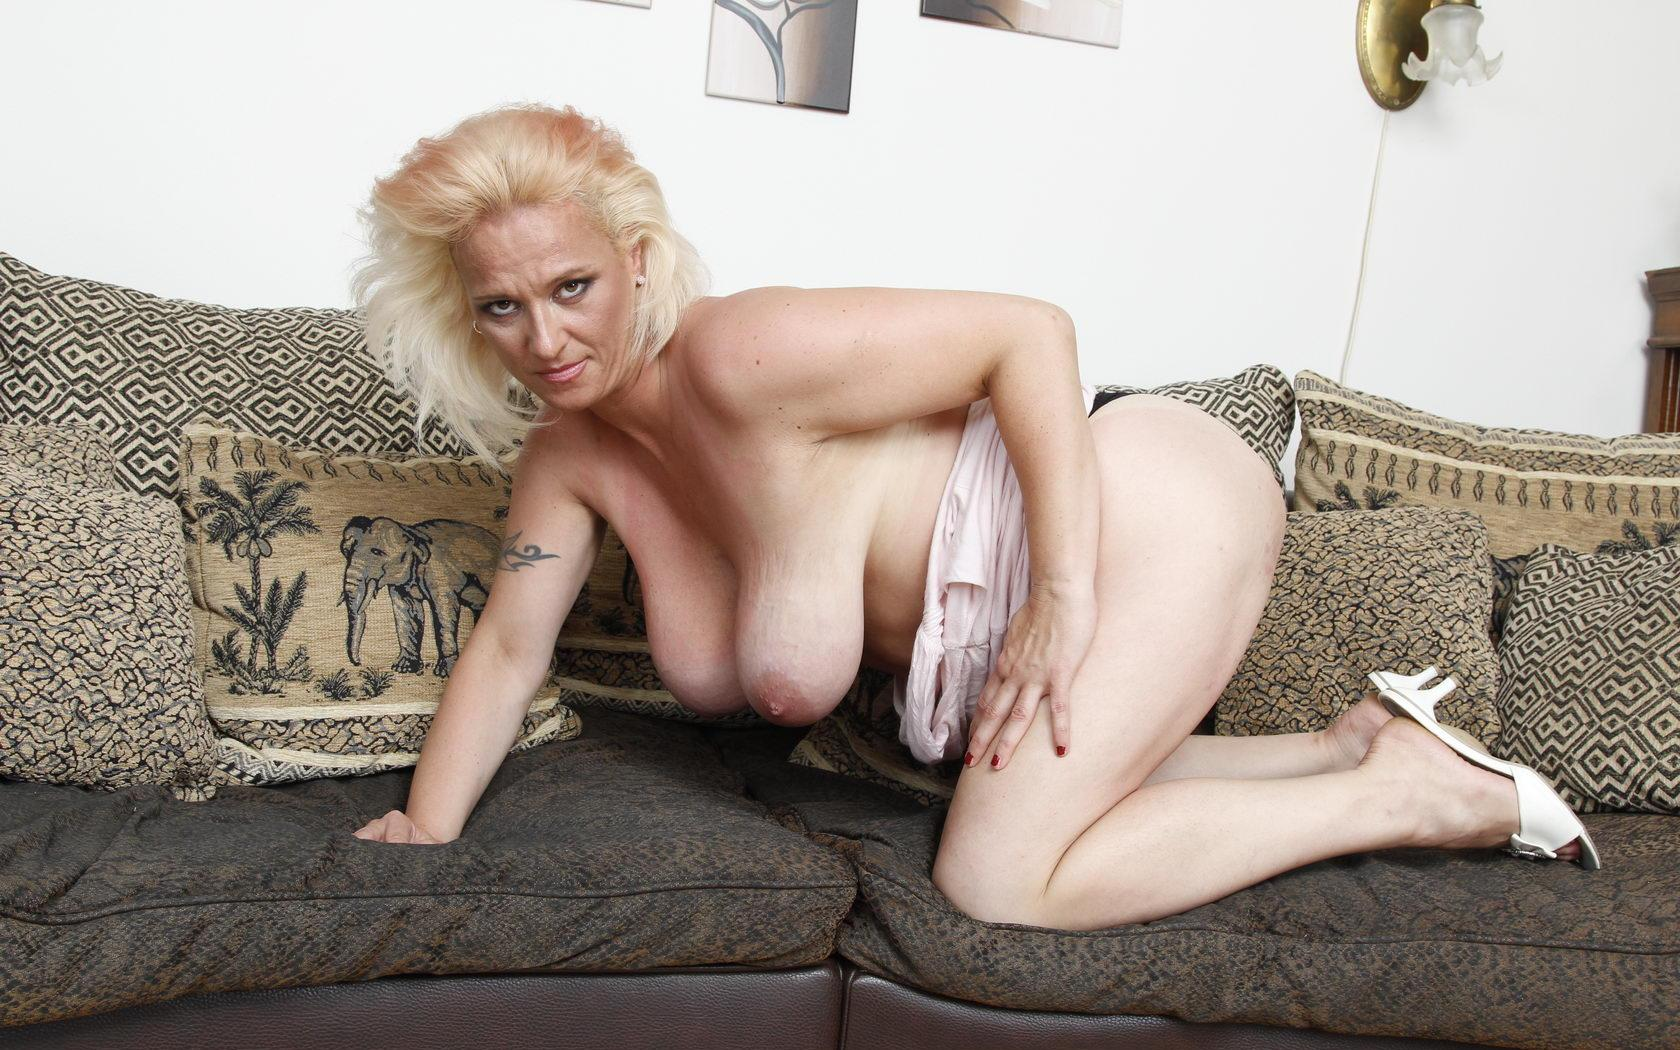 Lisa a golden granny showing her 60 years old saggy tits and tight body